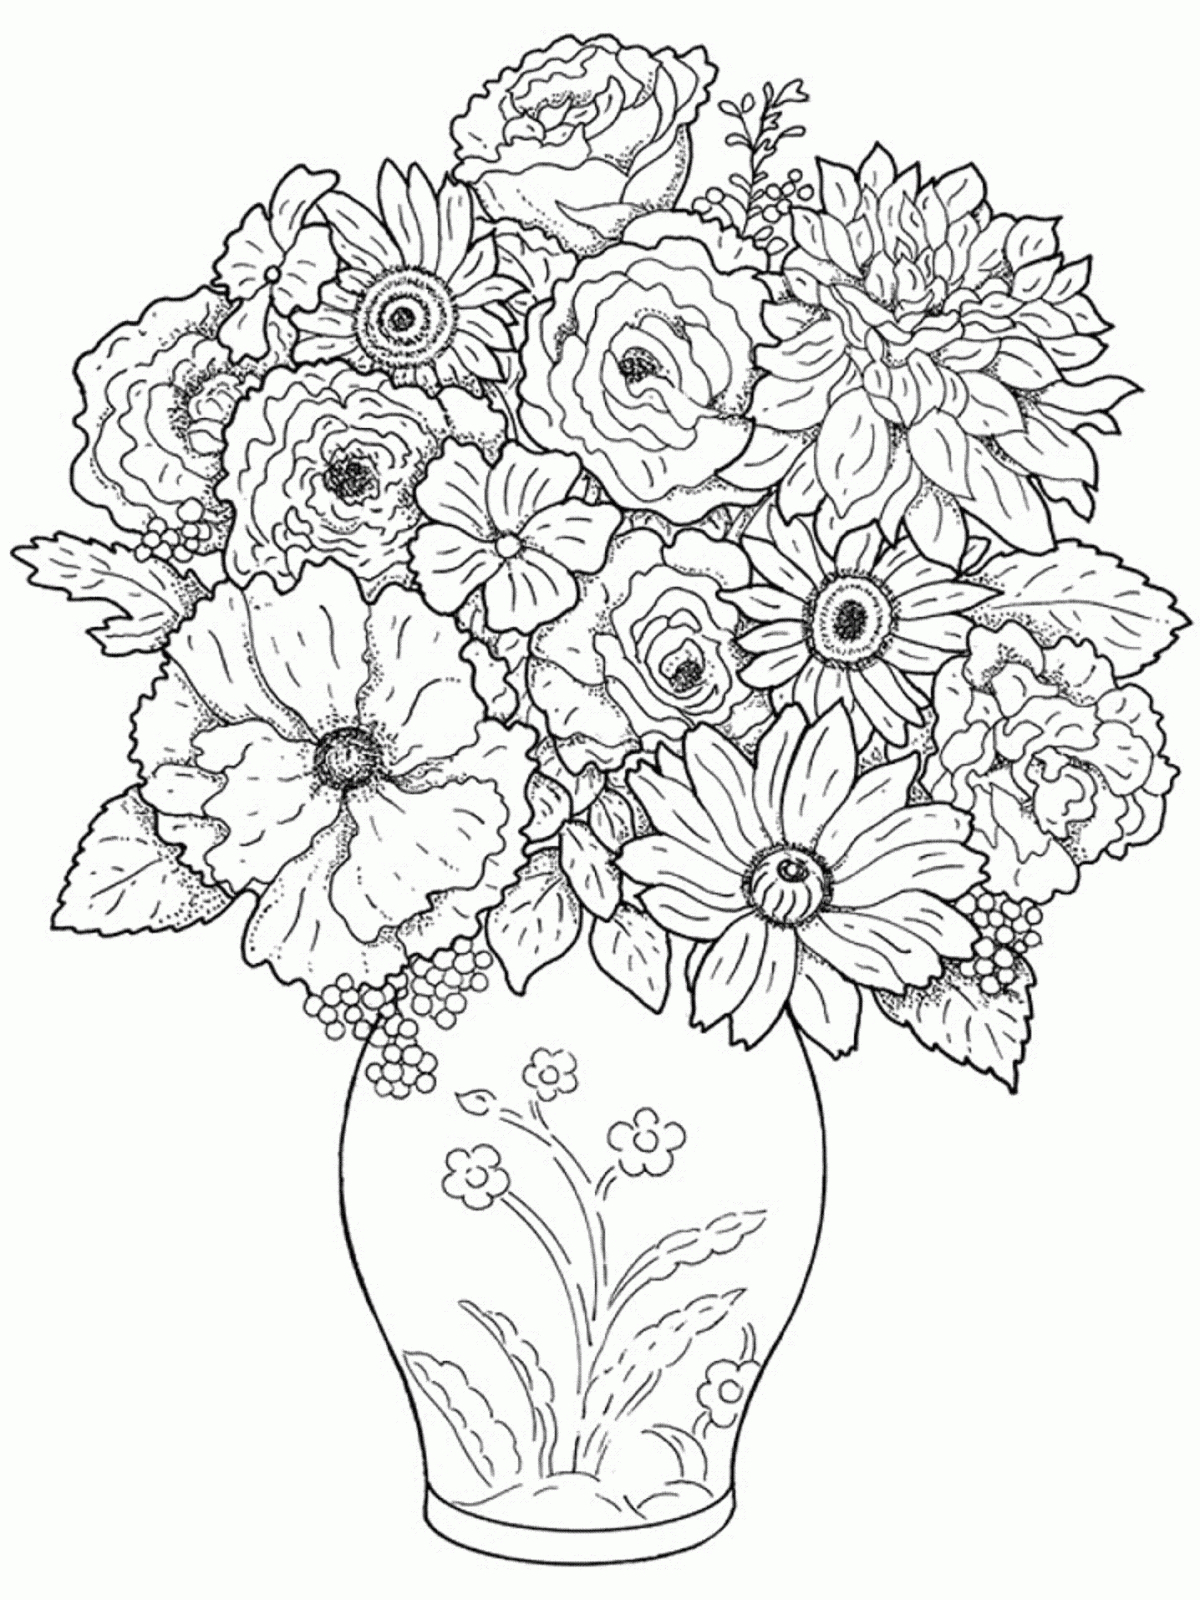 1200x1600 Cool Drawings To Flowerpot Draw In Pencil Easy Beautiful Flower